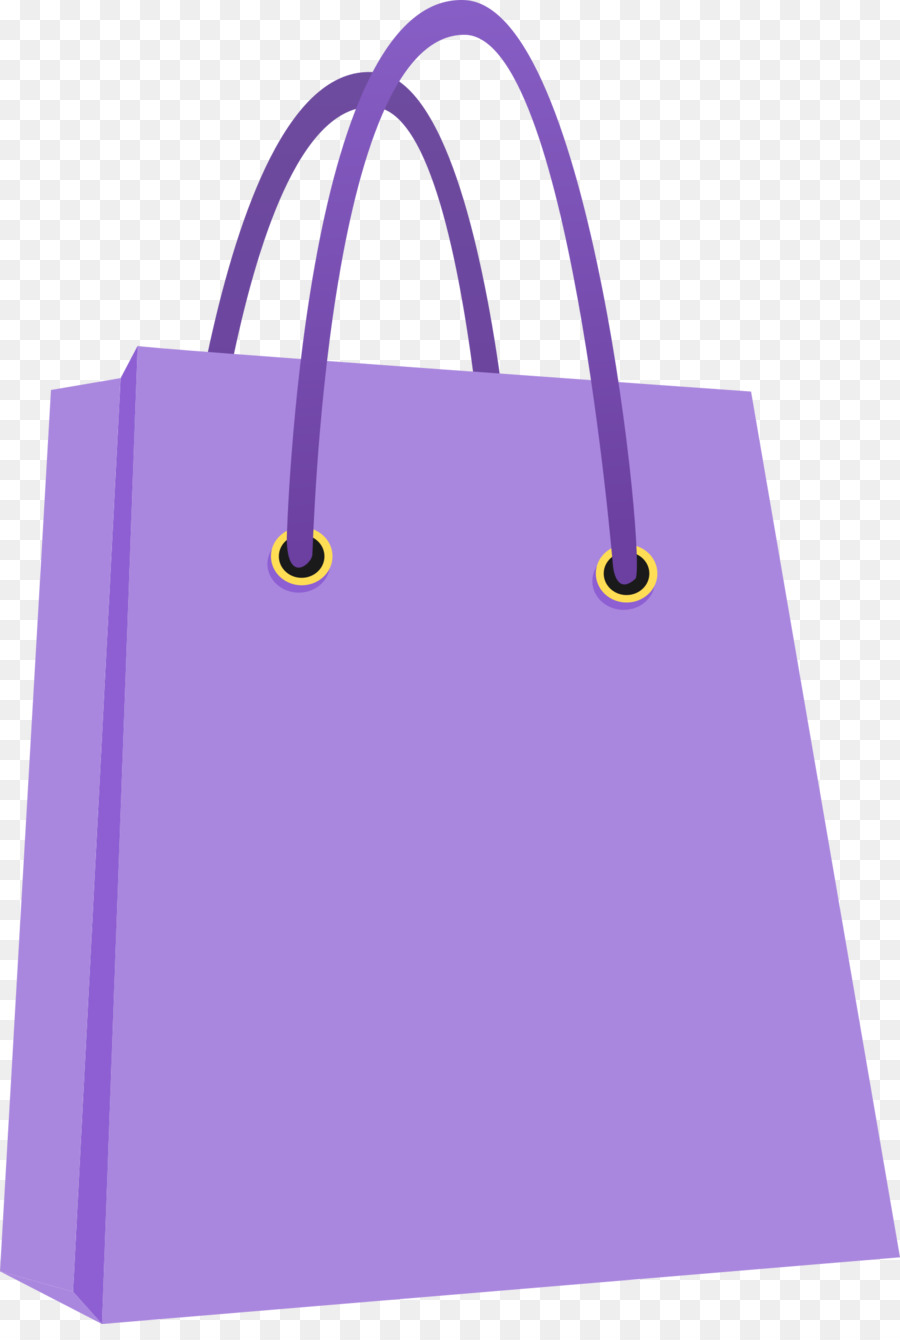 900x1340 Tote Bag Shopping Bags Amp Trolleys Clip Art